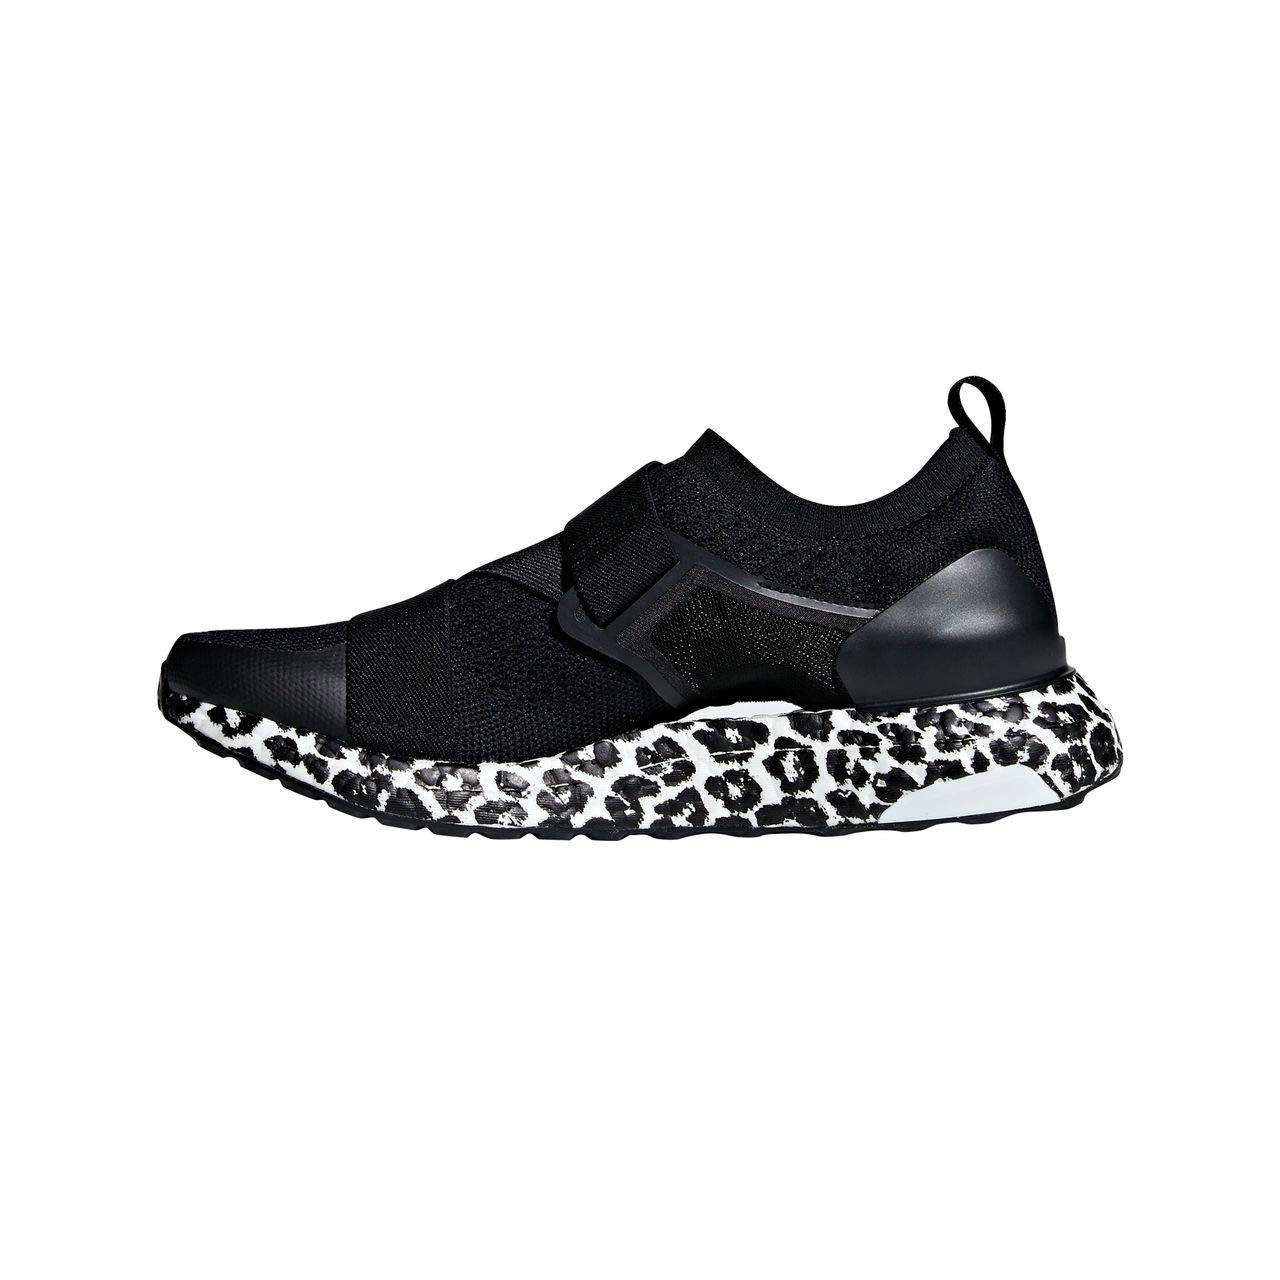 4f92dc19f89b2 Stella McCartney Ultraboost X Trainers Black 4 UK  Amazon.co.uk  Shoes    Bags